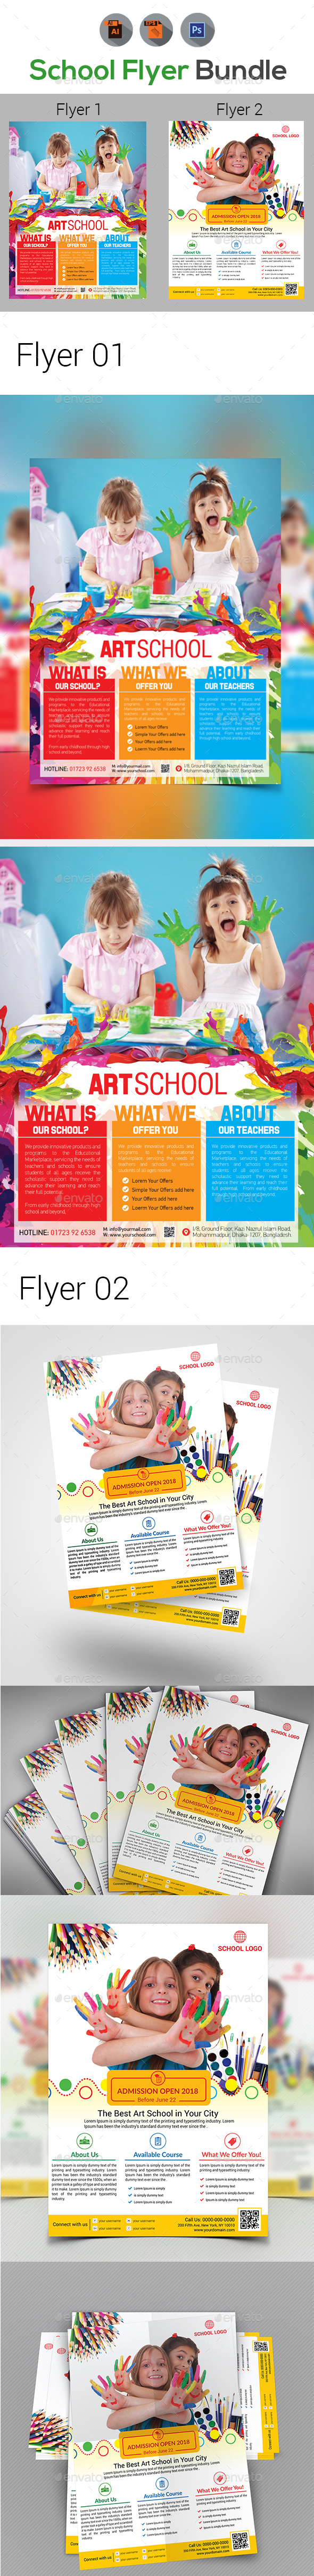 Arts School Flyers - Corporate Flyers